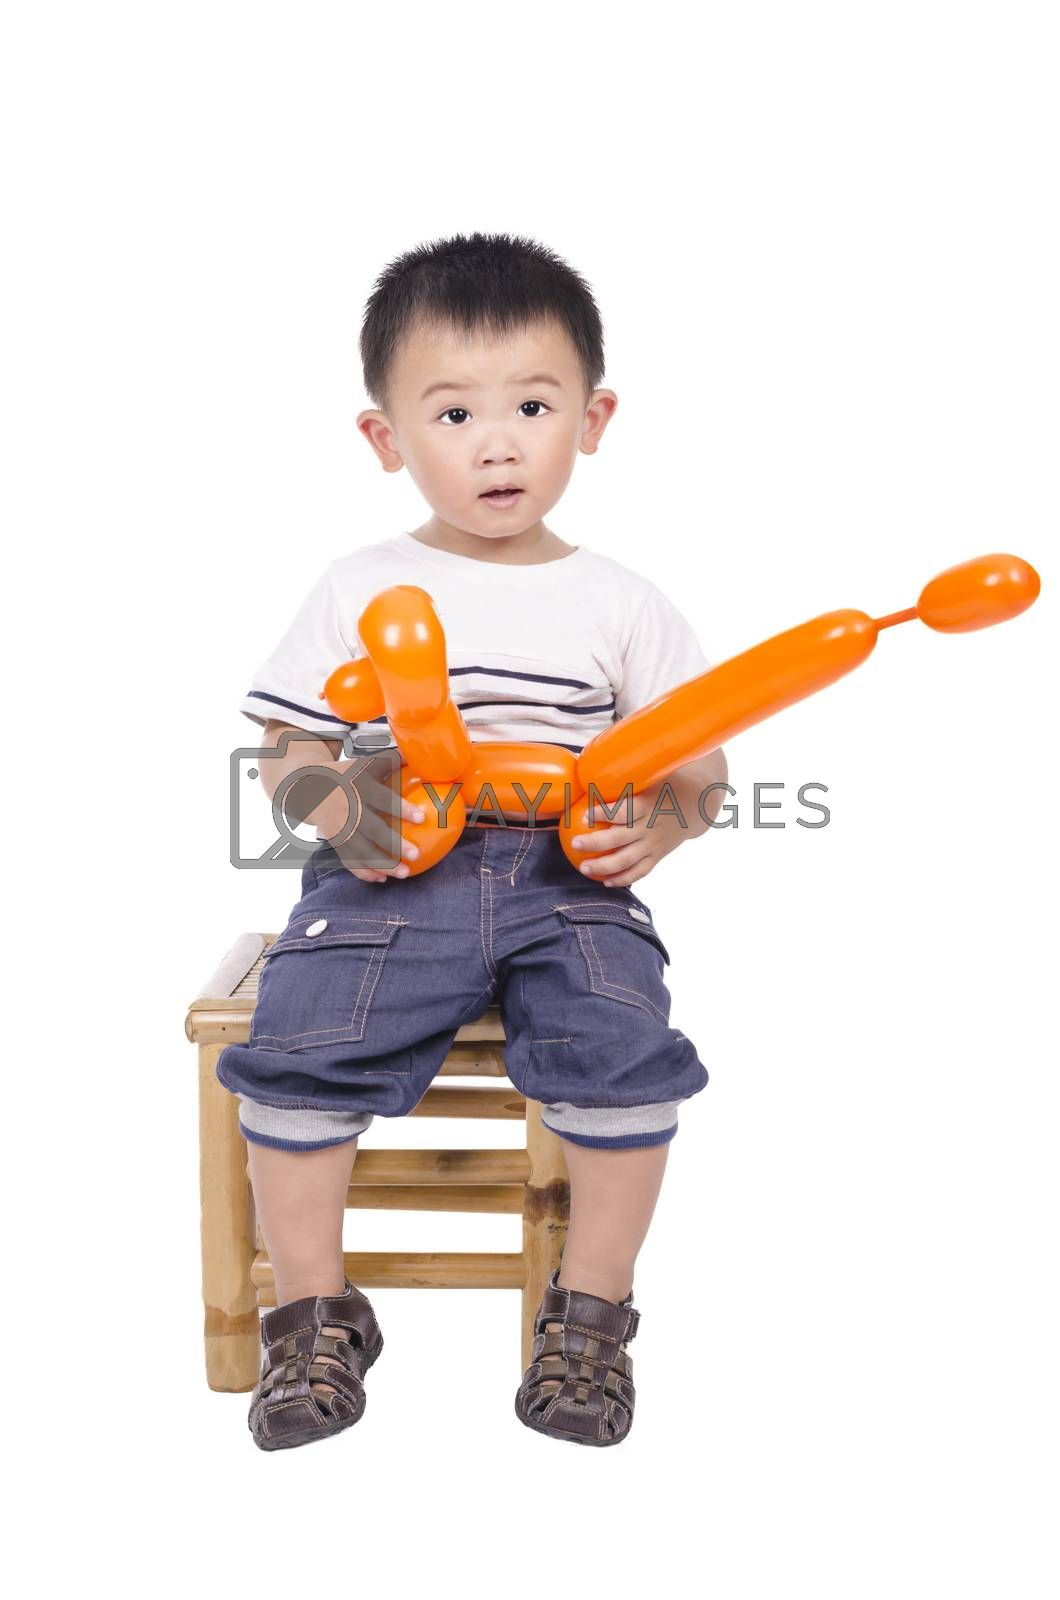 Royalty free image of Smart boy with balloon in his hand  by FrankyLiu